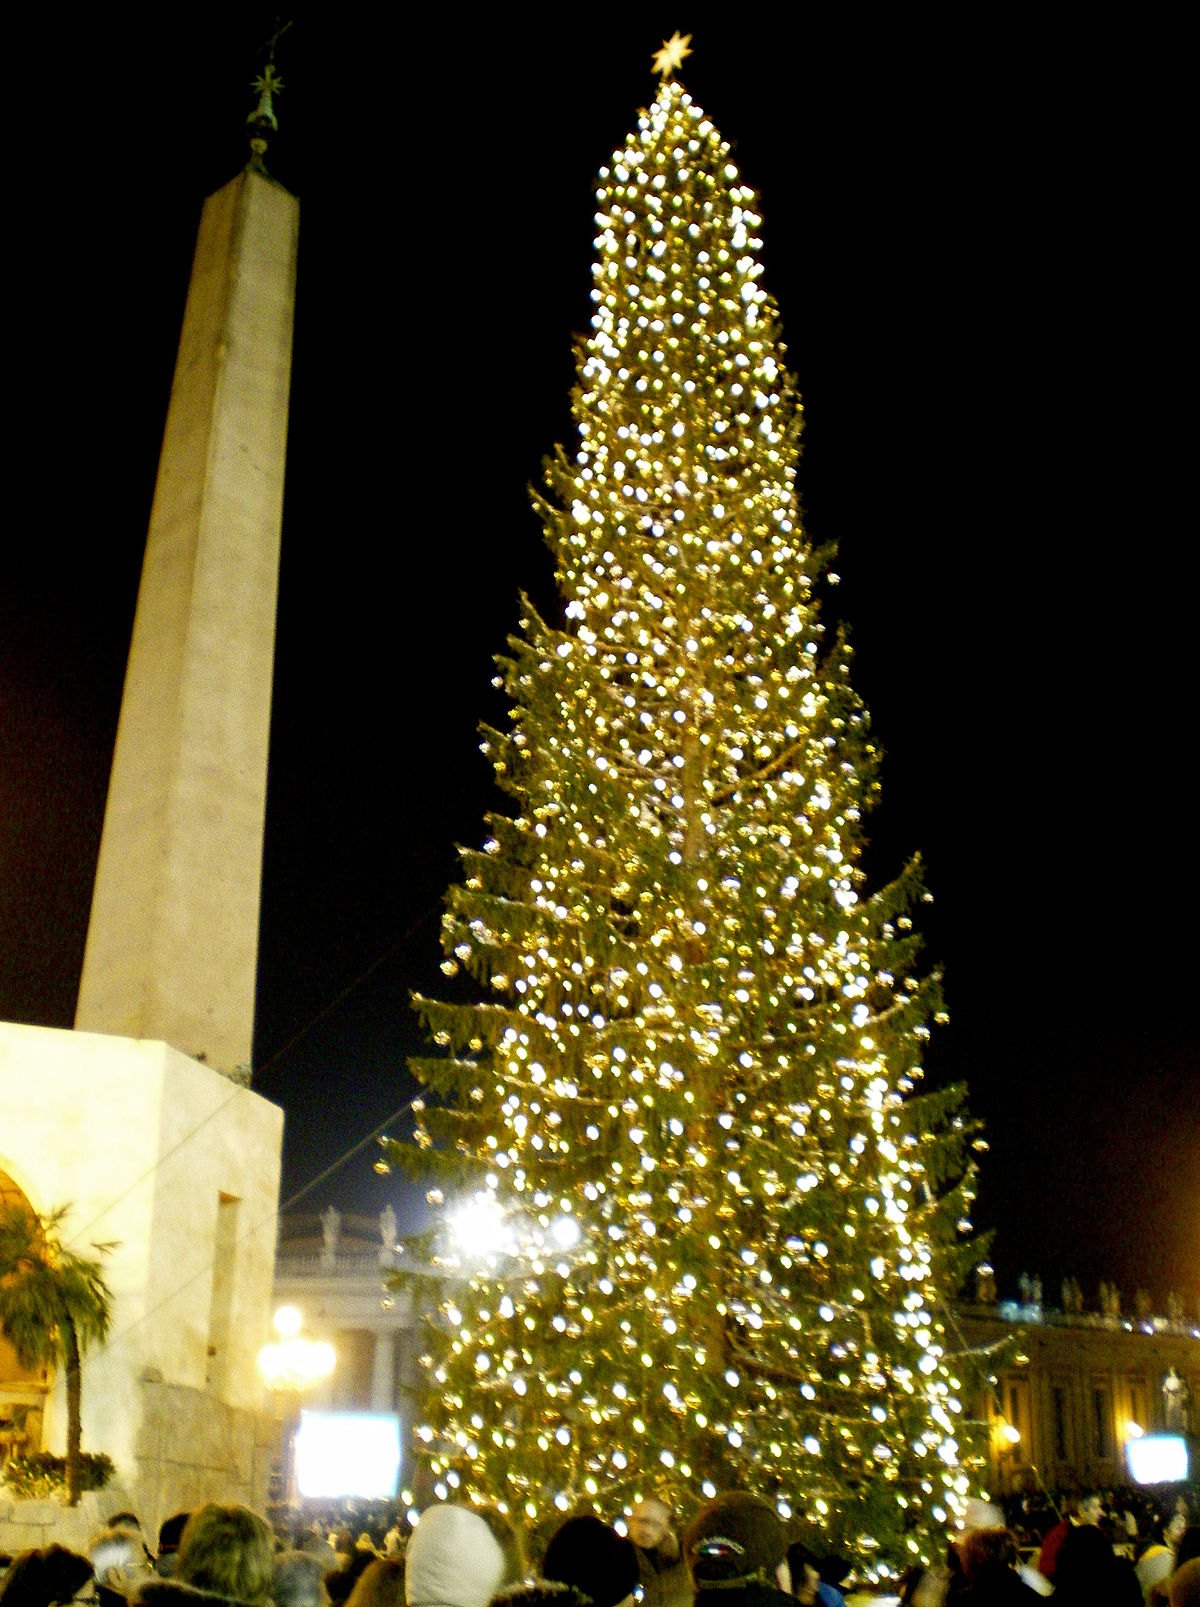 Vatican Christmas Tree - Wikipedia